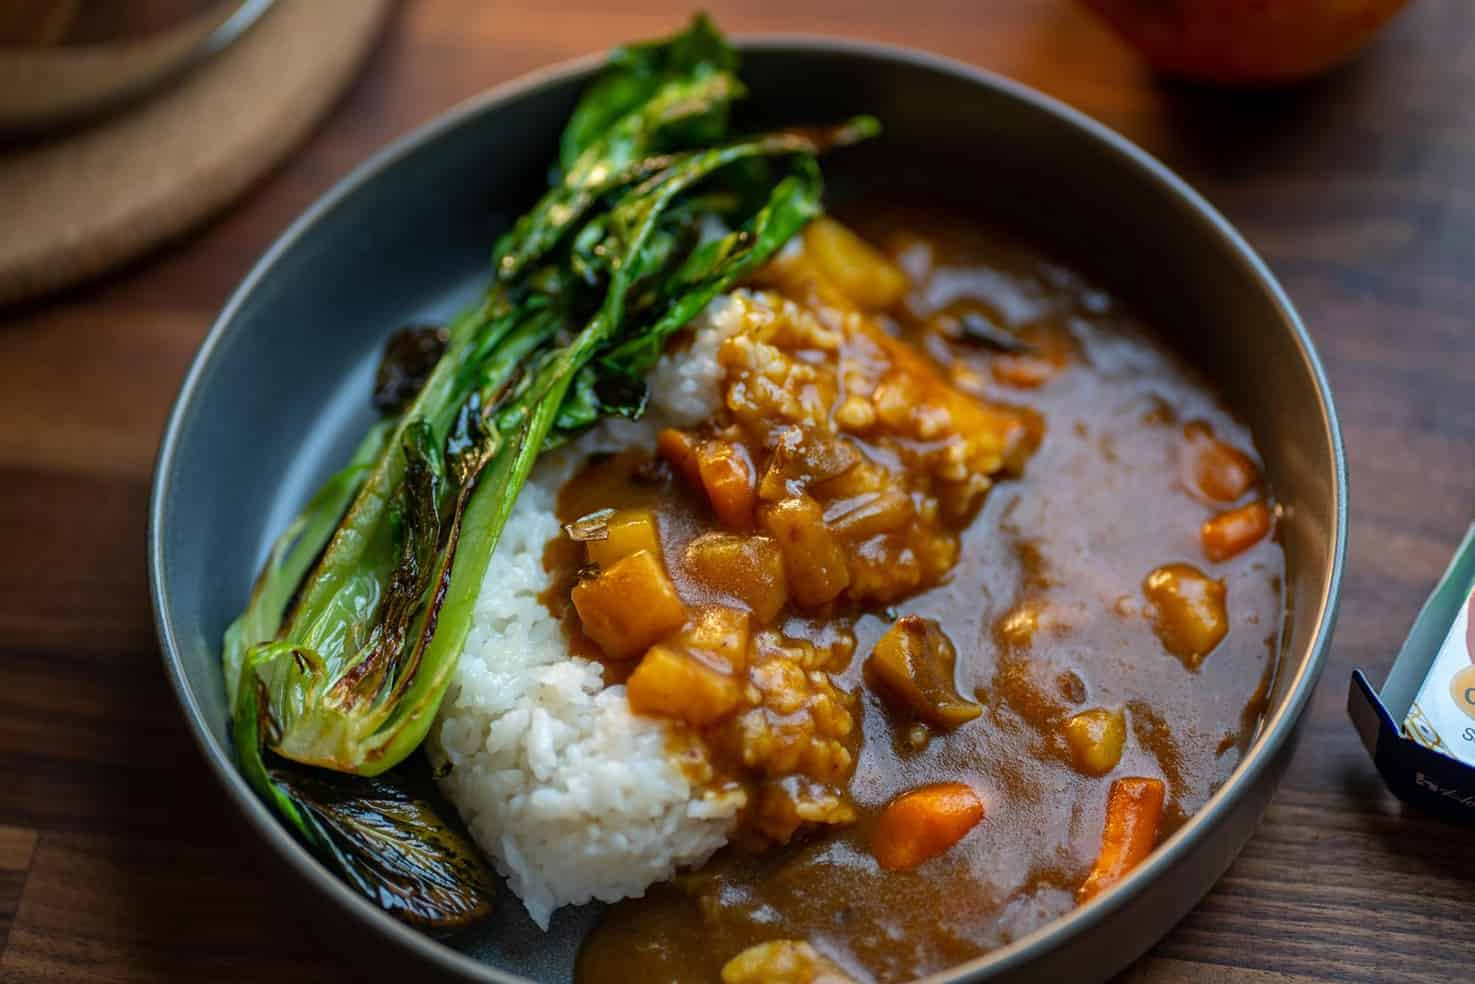 Chef Leon Is Our Pro Feature This Week Sharing A Japanese Curry Recipe Tallahassee Foodies